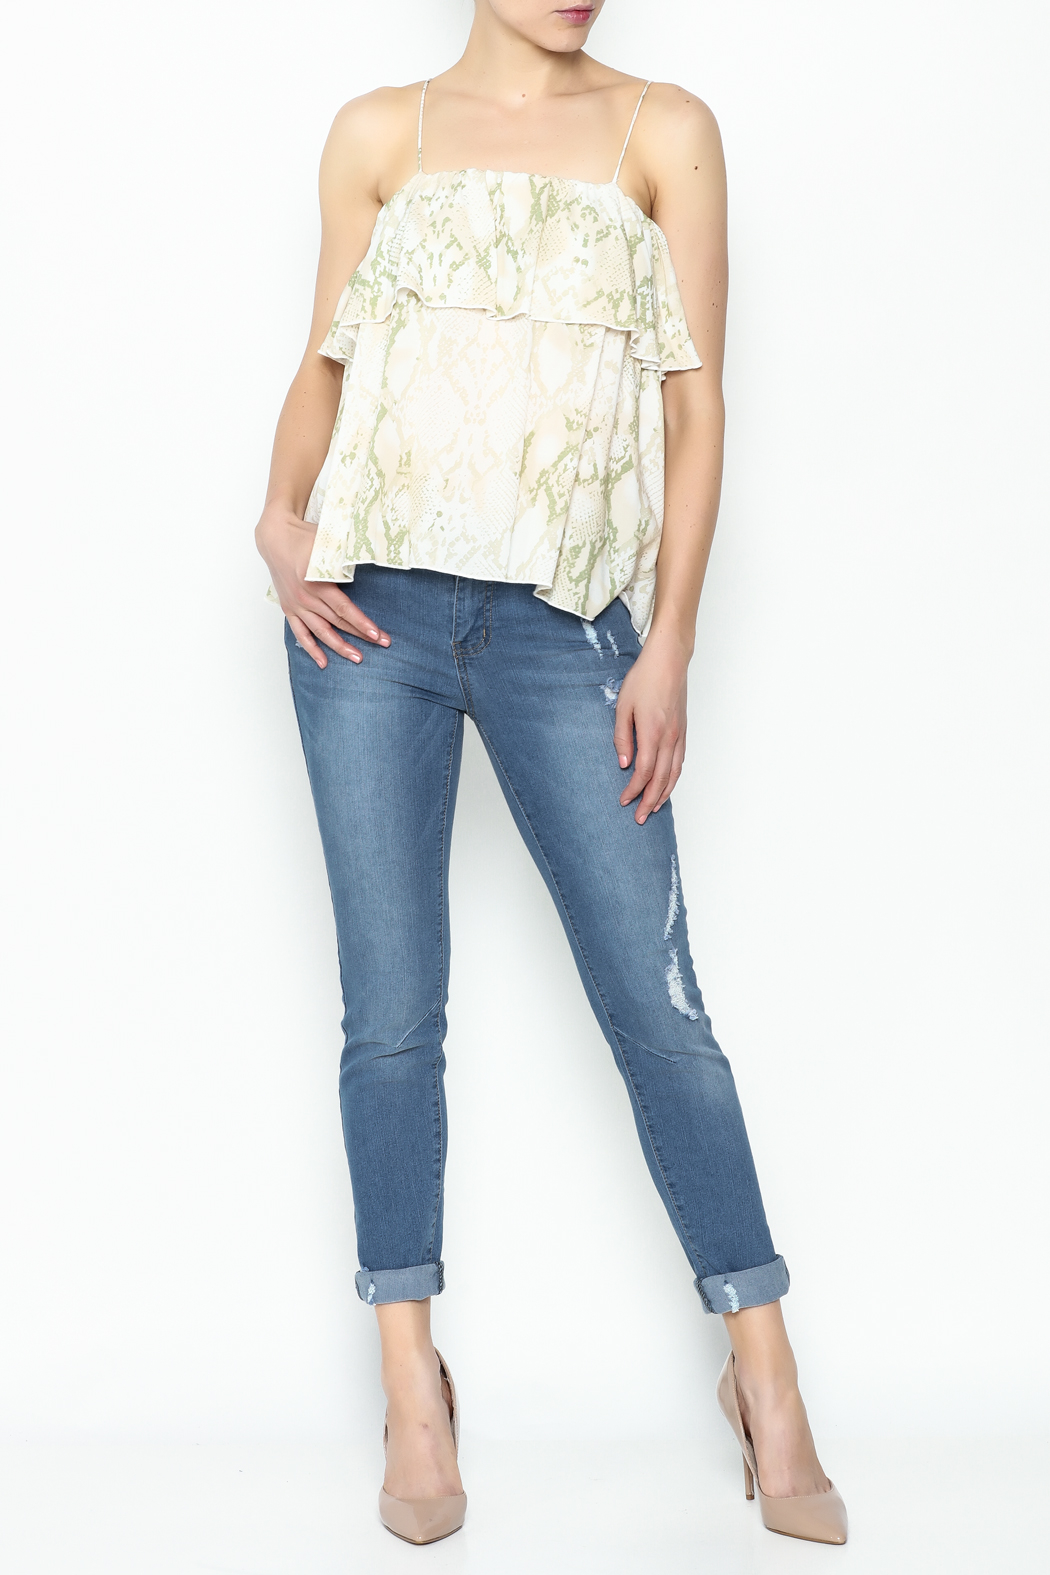 Olivaceous Python Ruffle Tank - Side Cropped Image